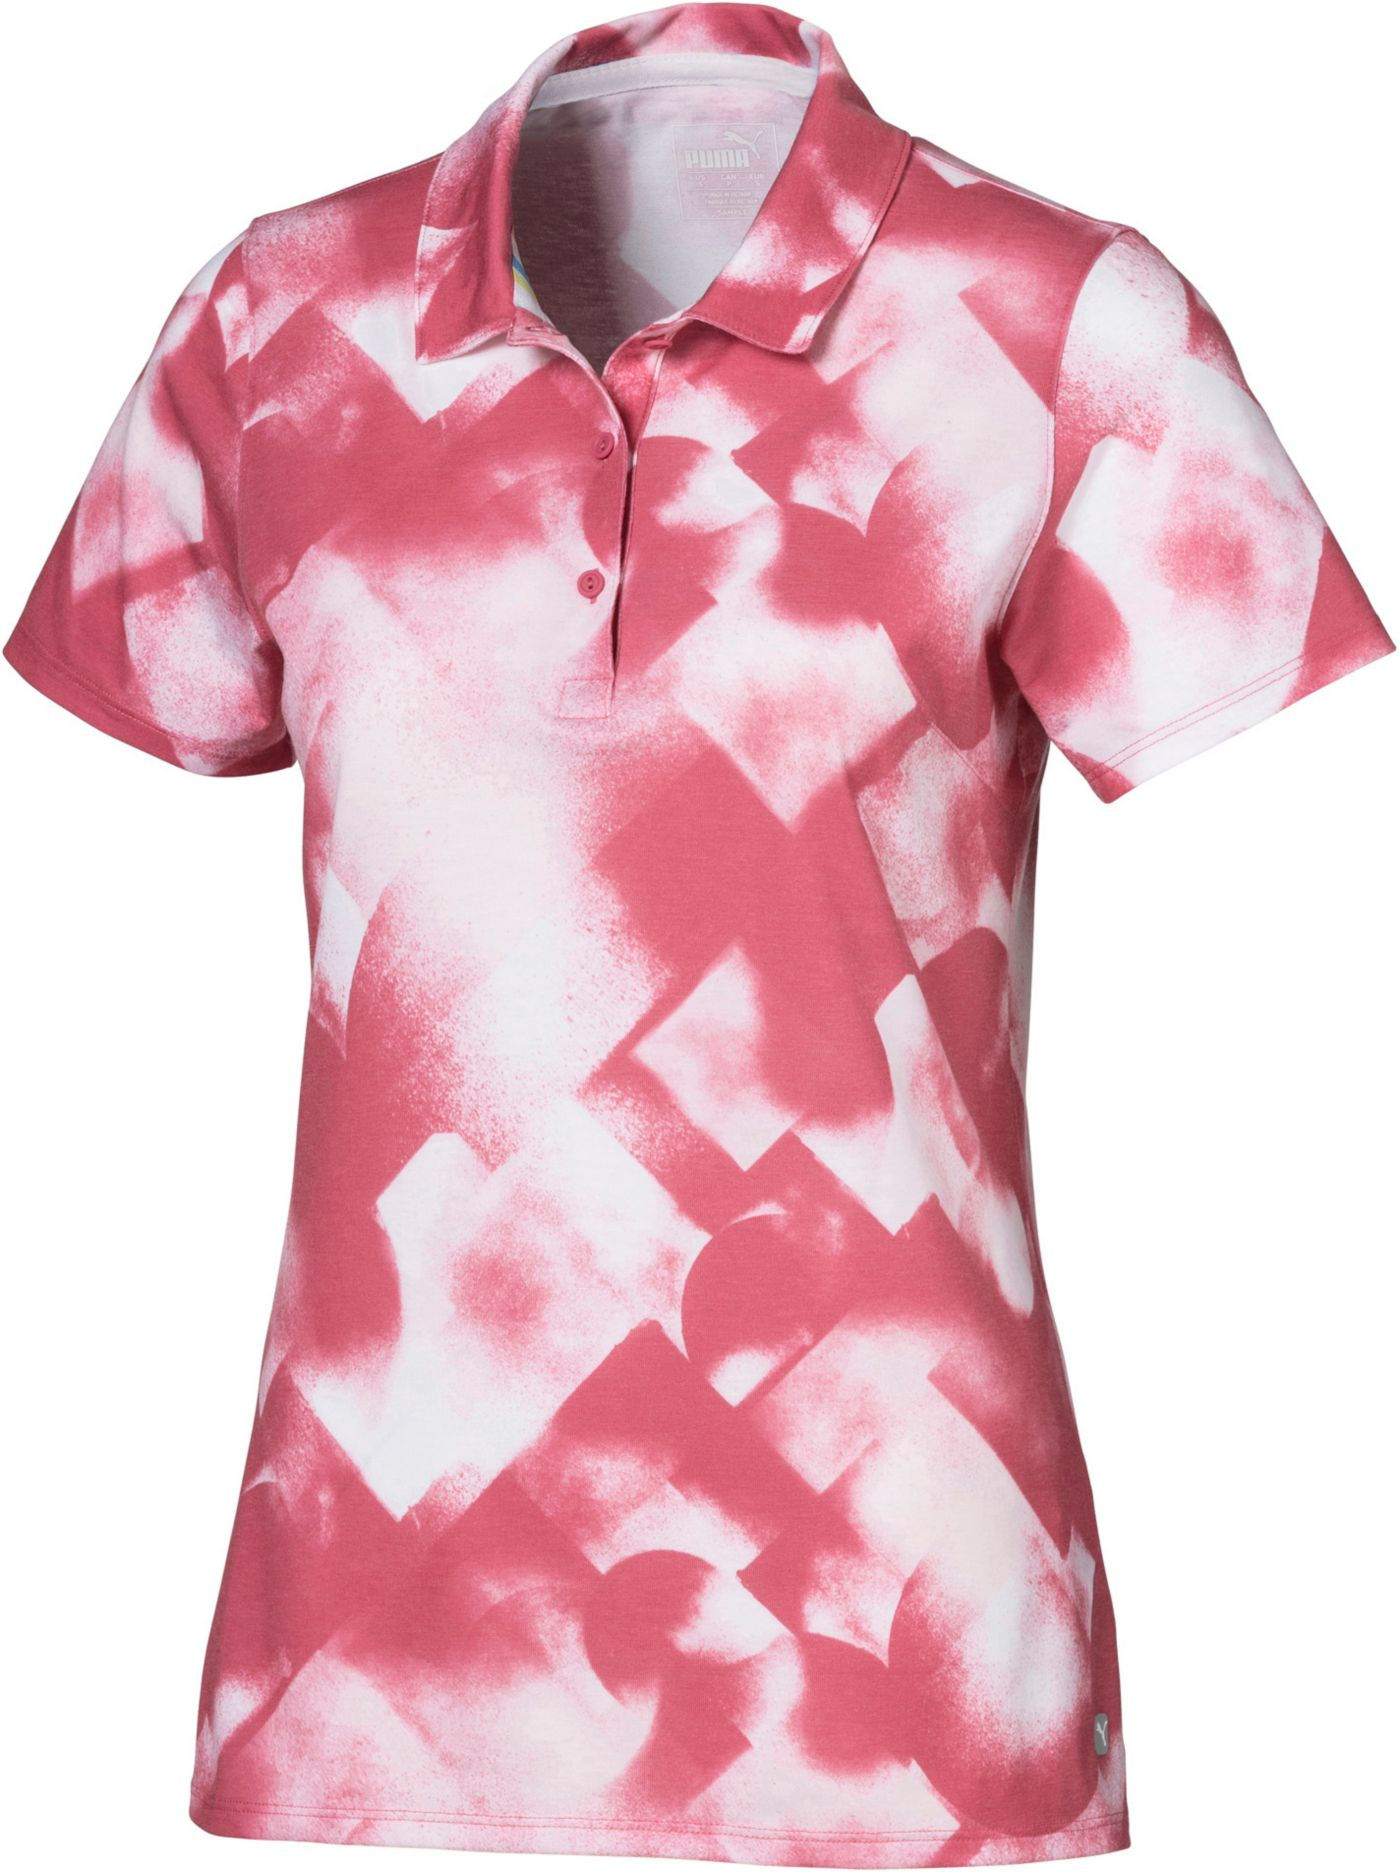 PUMA Women's Soft Geo Print Short Sleeve Golf Polo